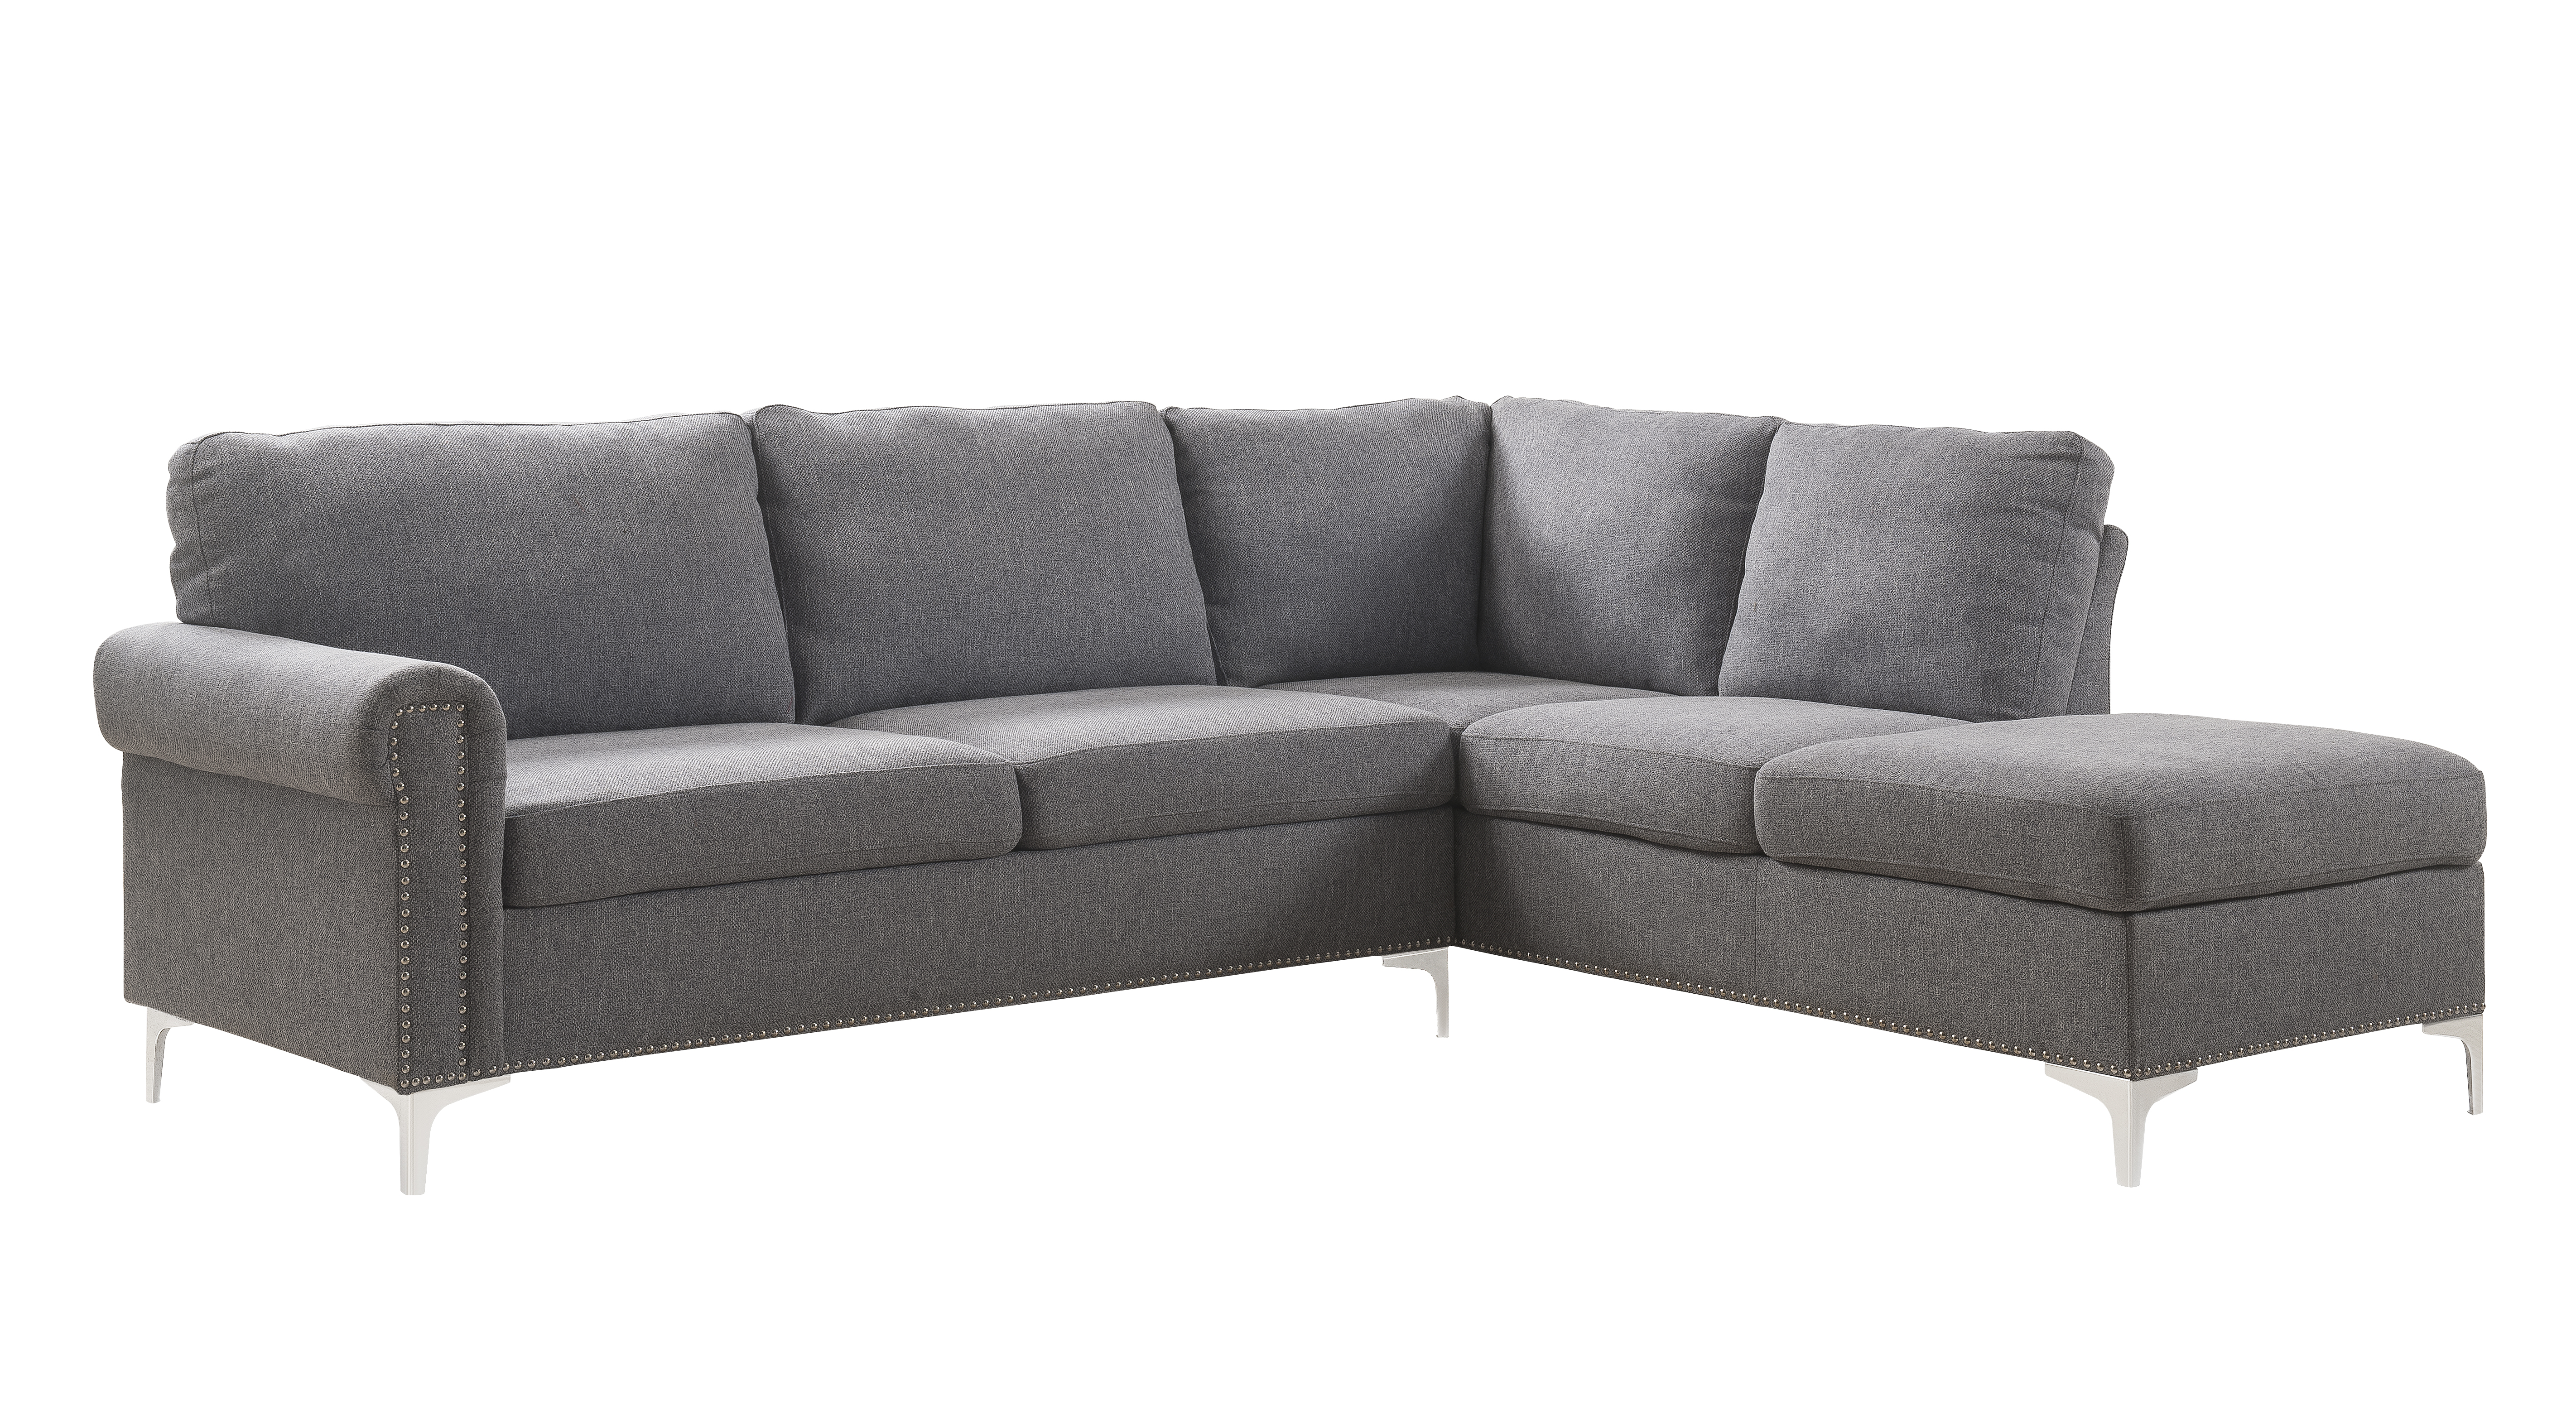 Sofa Grey Ebay Details About Acme Contemporary Melvyn Sofa With Gray Fabric Finish 52755